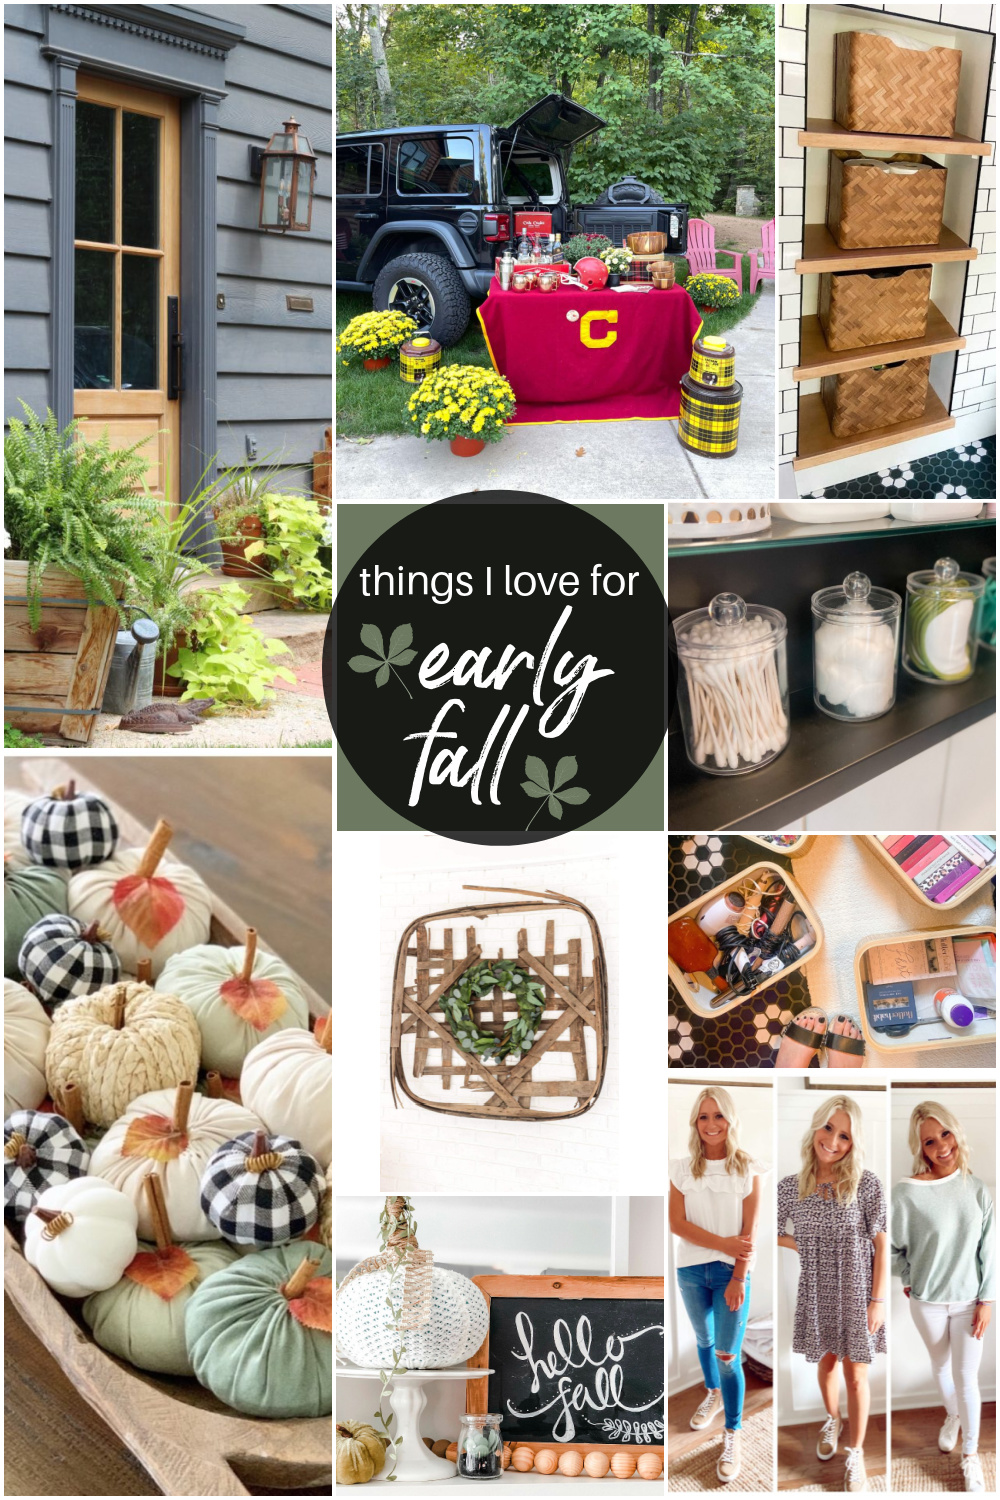 Welcome Home Saturday - Things I Love This Week! Bathroom Remodel, Organizing Ideas and Fall Goodness!